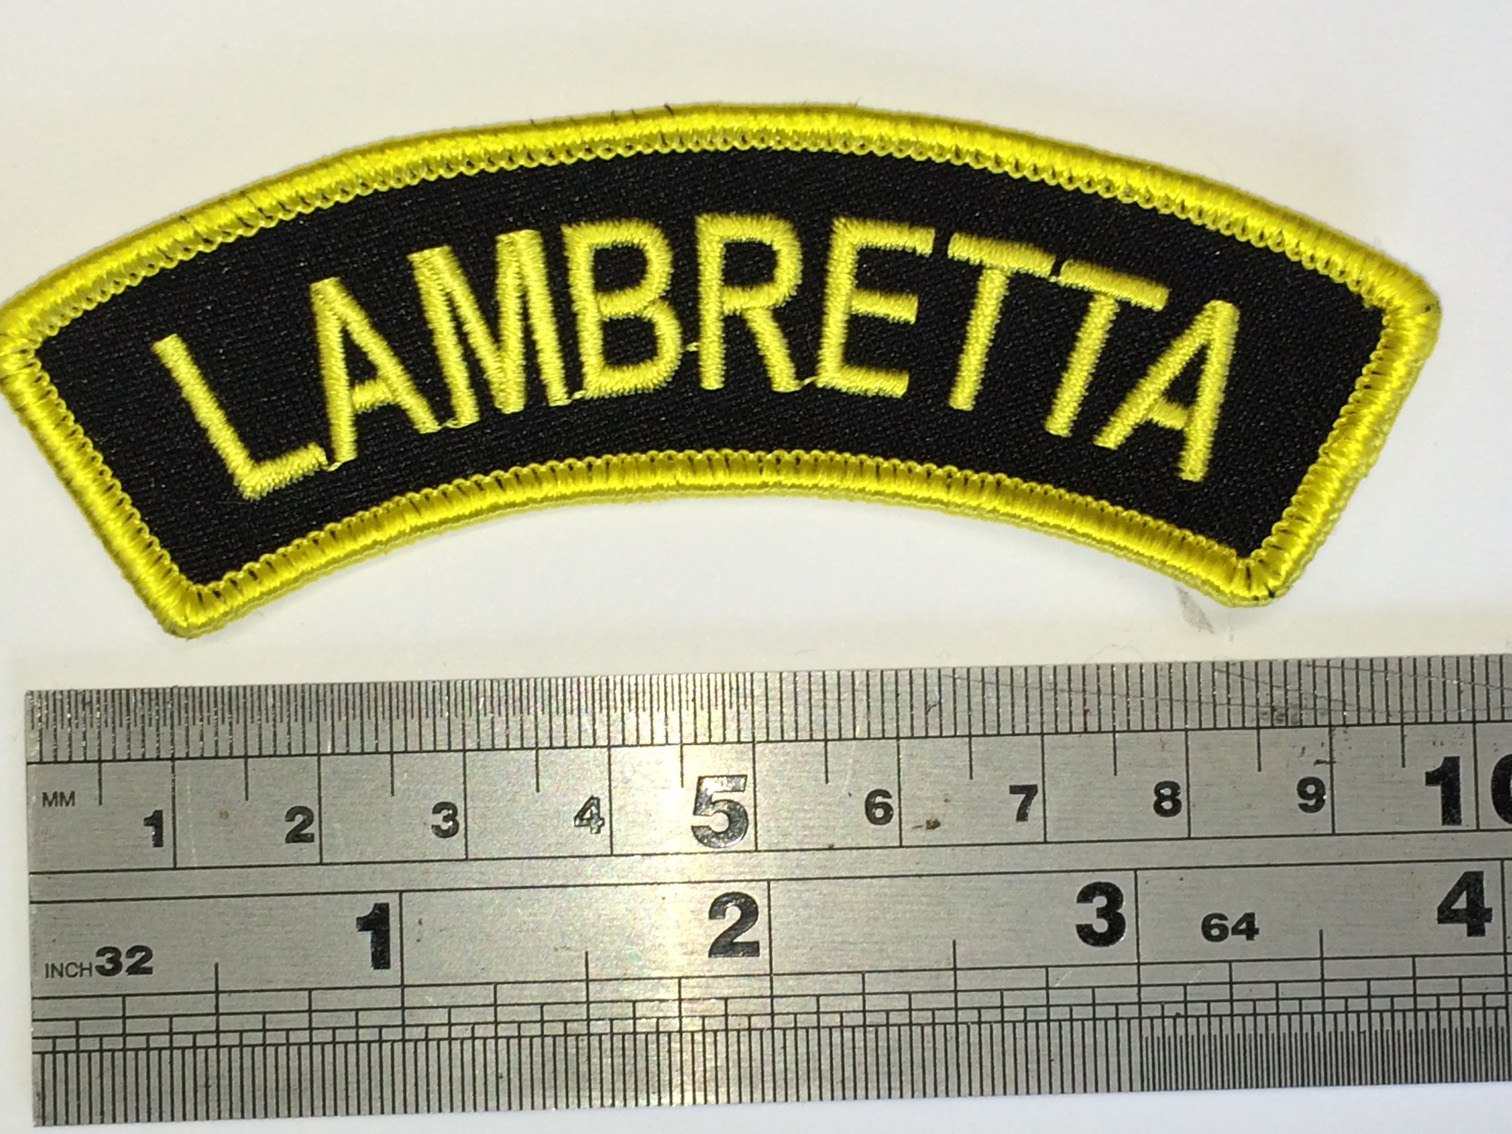 Get around better TRAVEL Lambretta Patch Iron or Sew On Embroidered